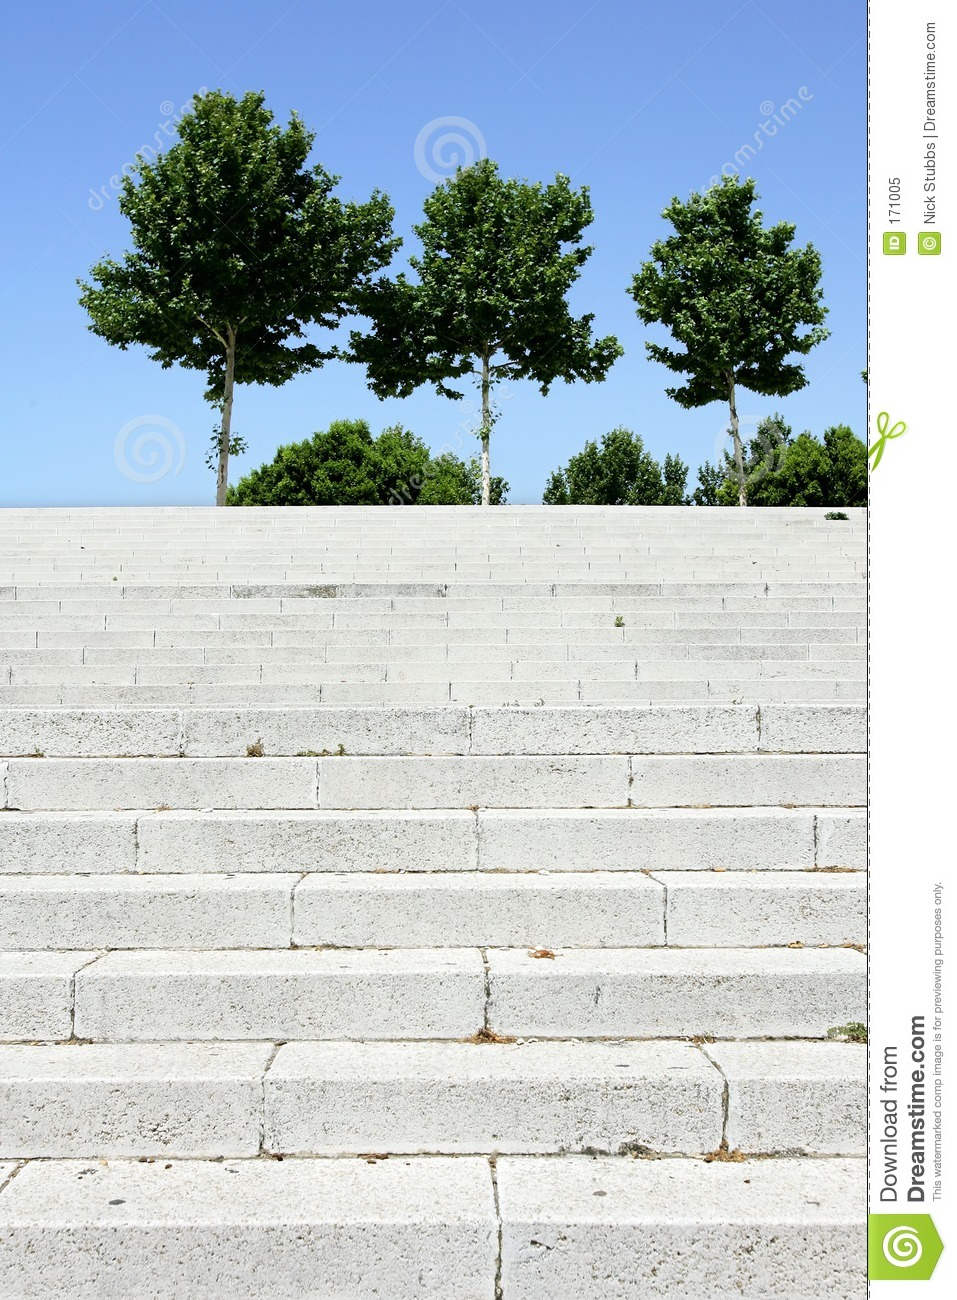 Steps and trees in Seville, Spain